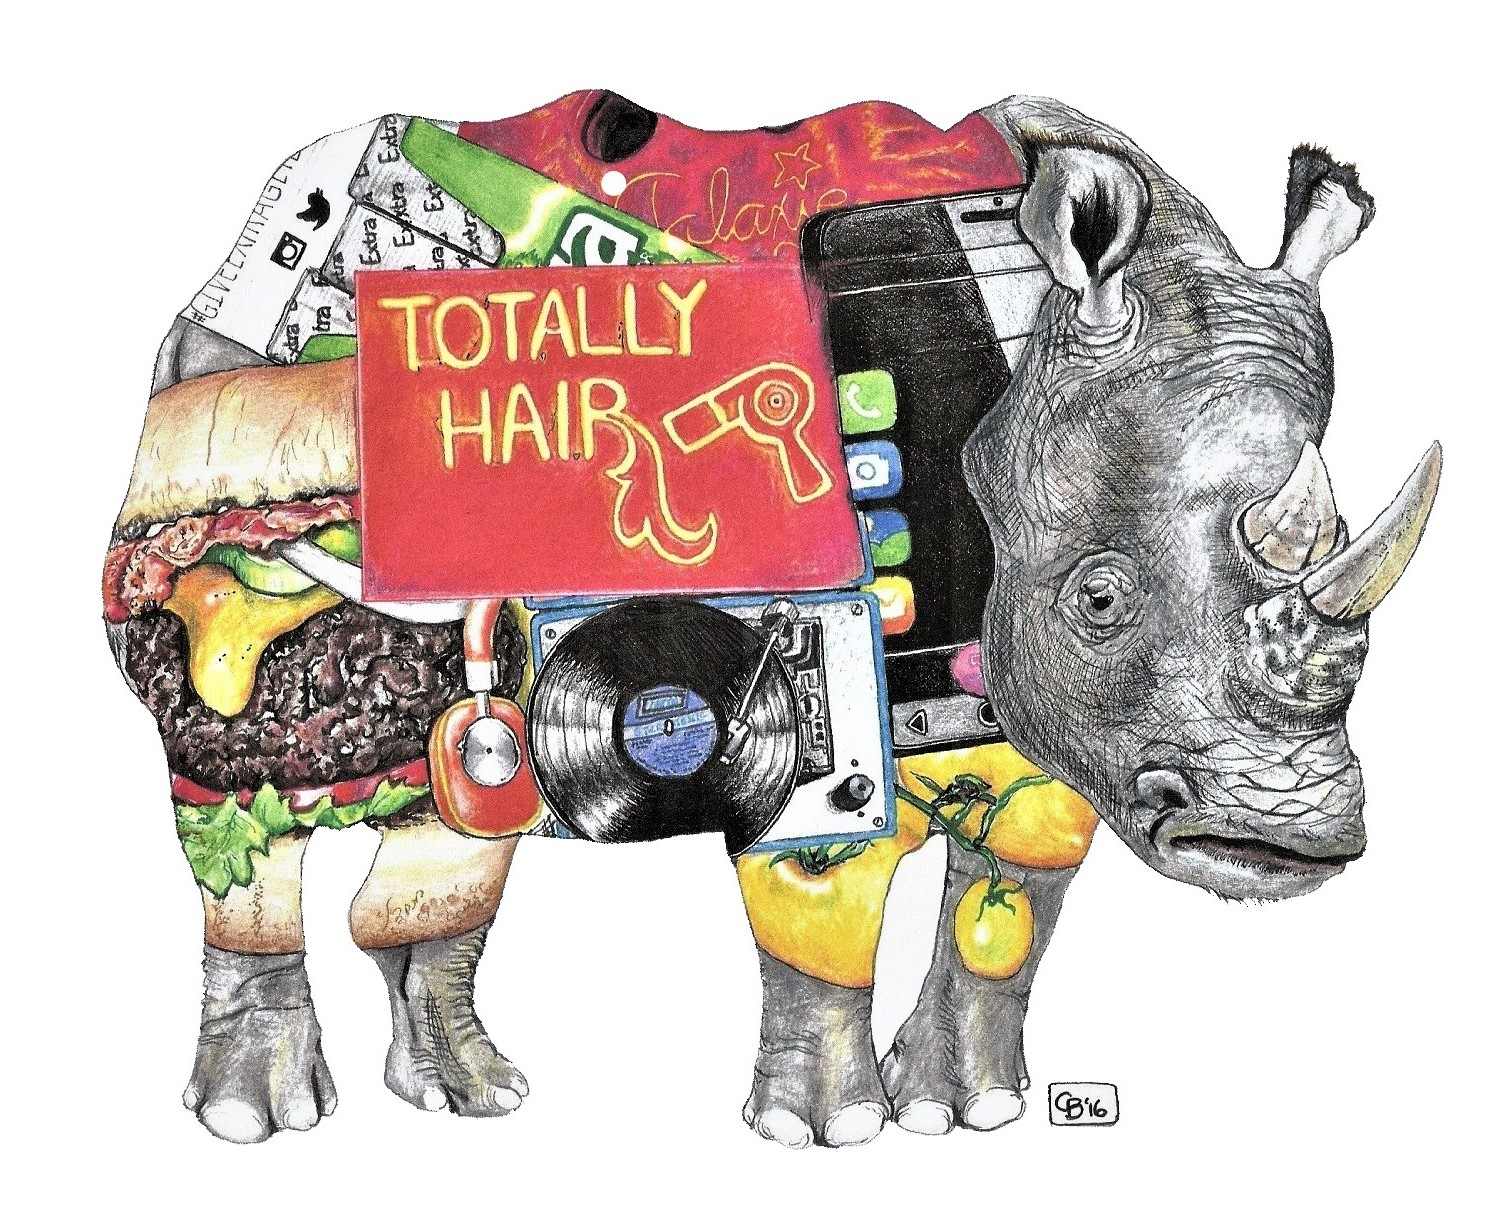 Rhinocerous, Objects, Drawing, Detail, Animal, Colored Pencil, Marker